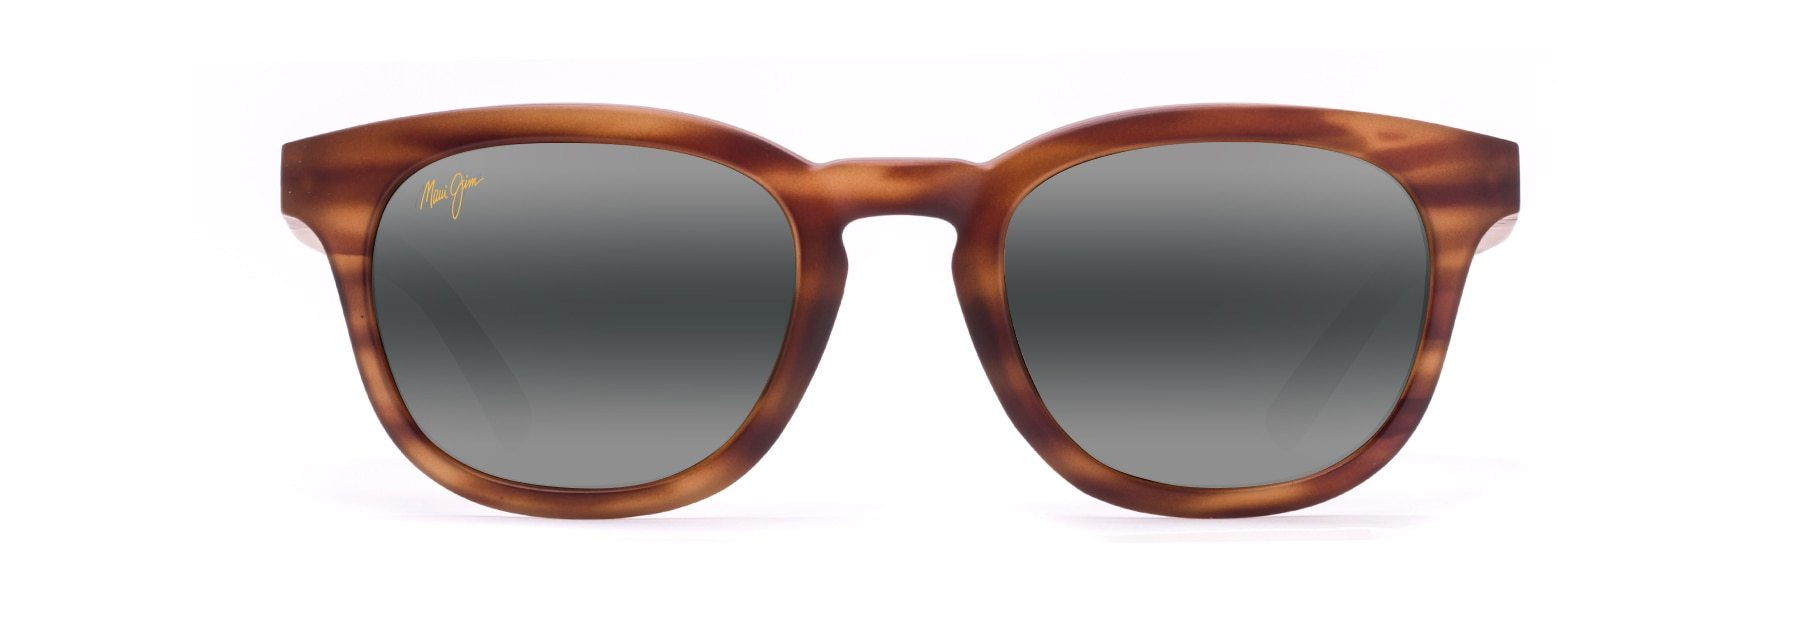 MyMaui Koko Head MM737-007 Sunglasses